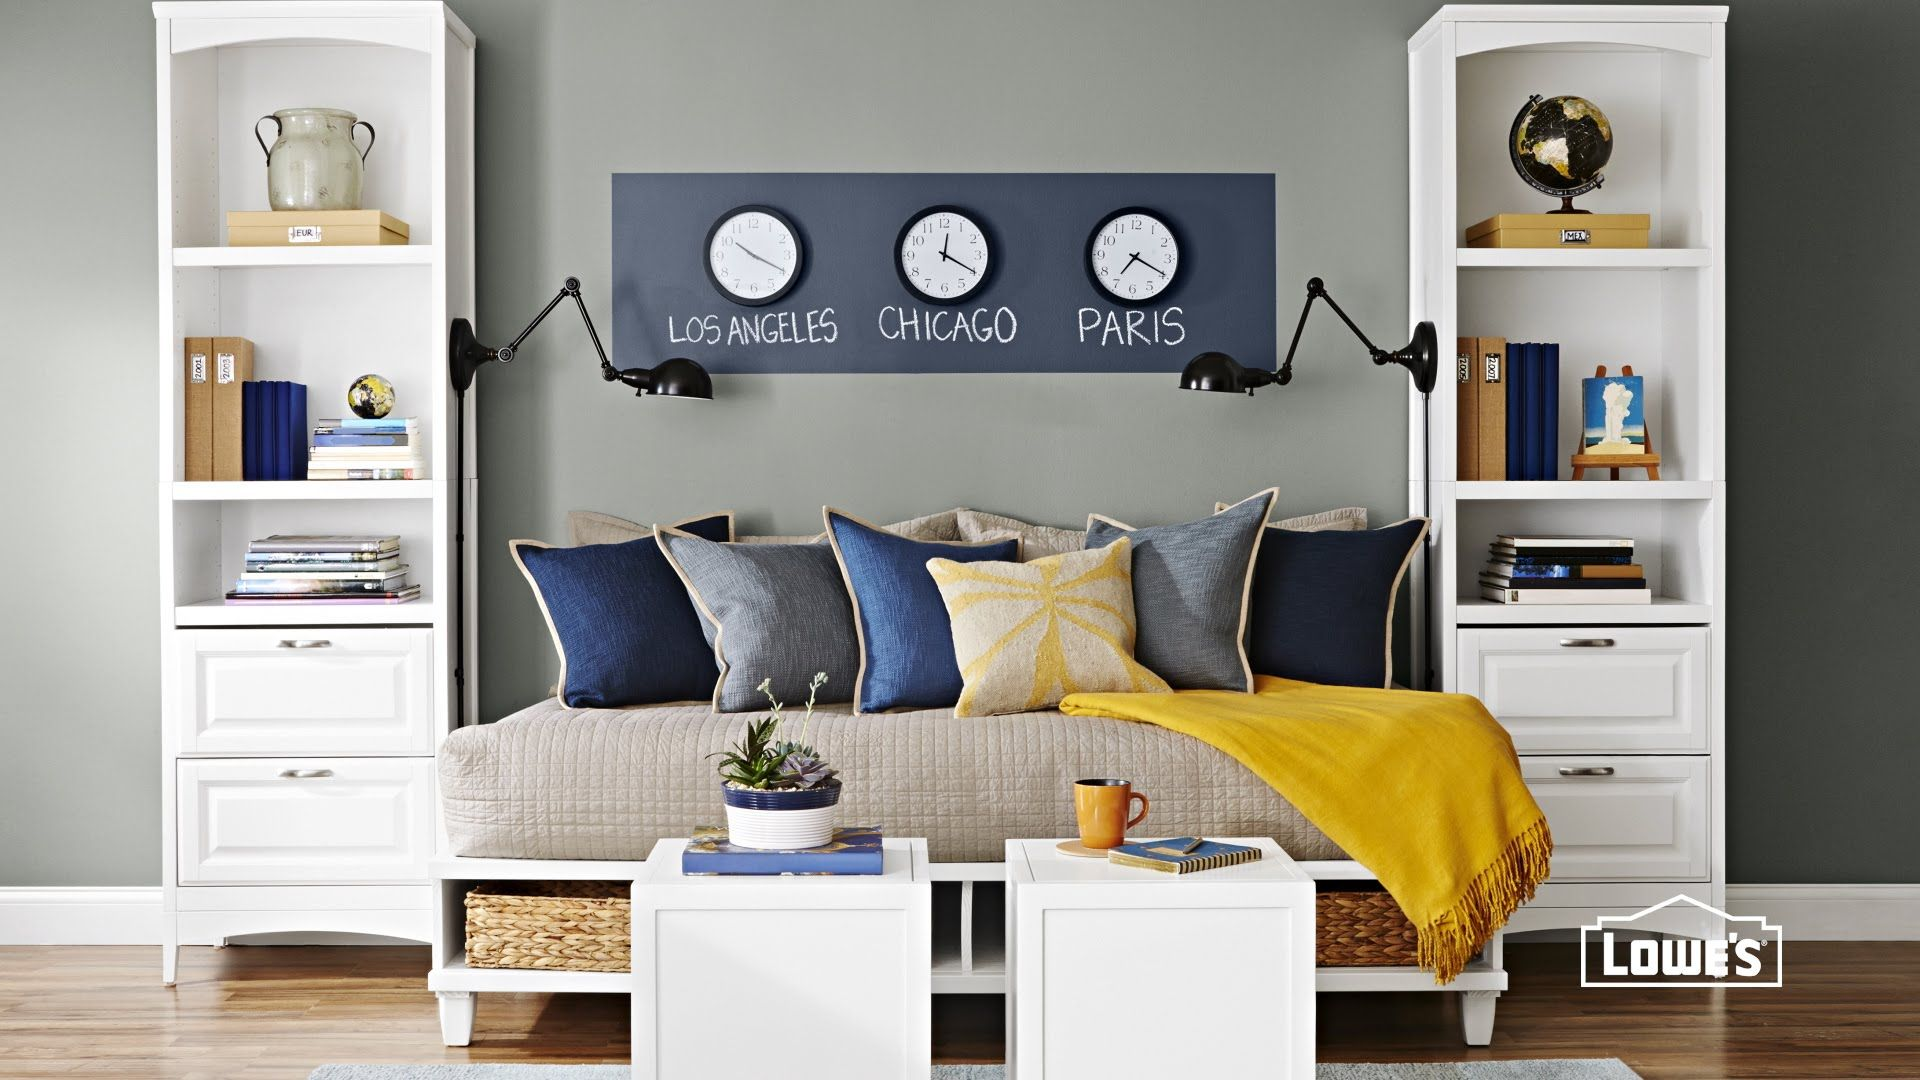 5 Ideas For Decorating A Guest Room Double Up A Guest Bedroom As A Home Office A Living Room Or A With Images Small Guest Bedroom Small Guest Rooms Guest Bedroom Office